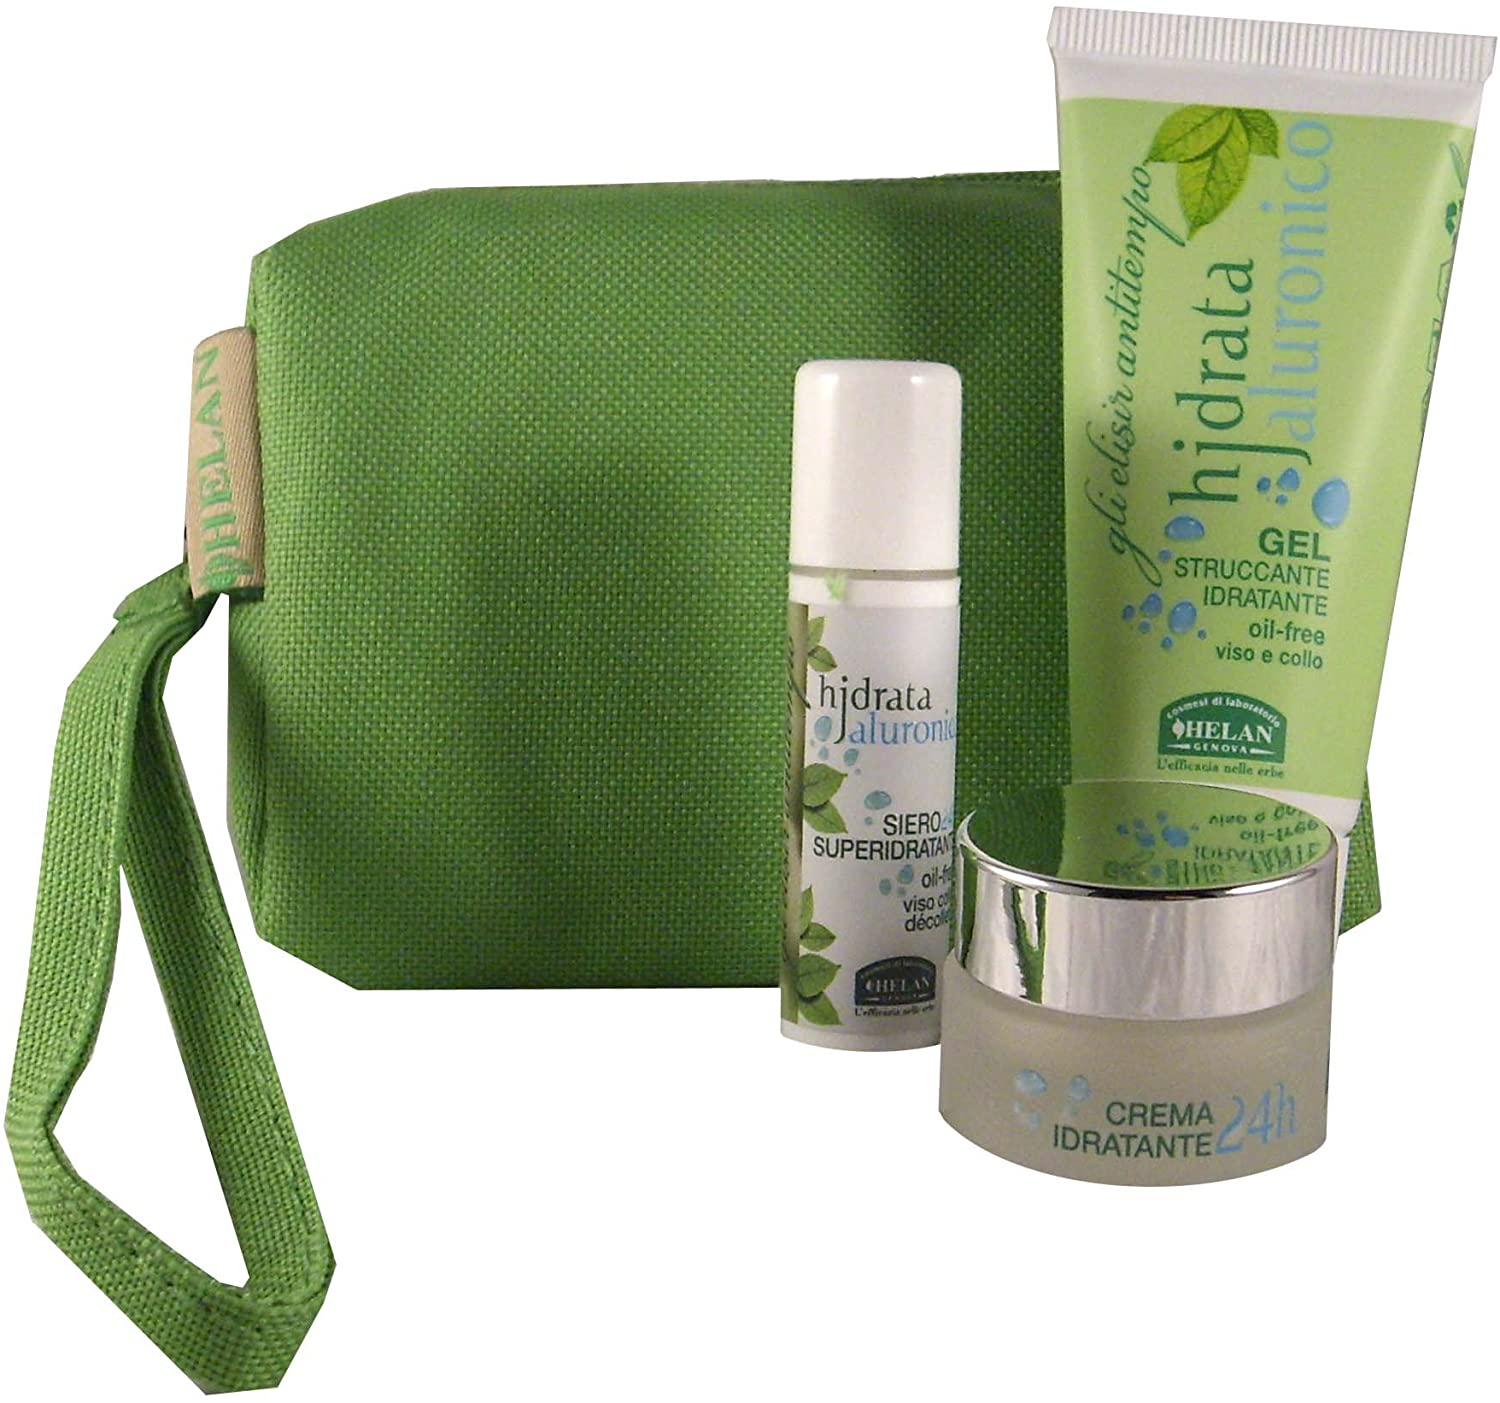 Helan Naturals Hydrata 24H for Dehydrated and Aging Skin Travel Kit with Cleanser, Serum and Hyaluronic and Glycosaminoglycan Anti-aging Cream